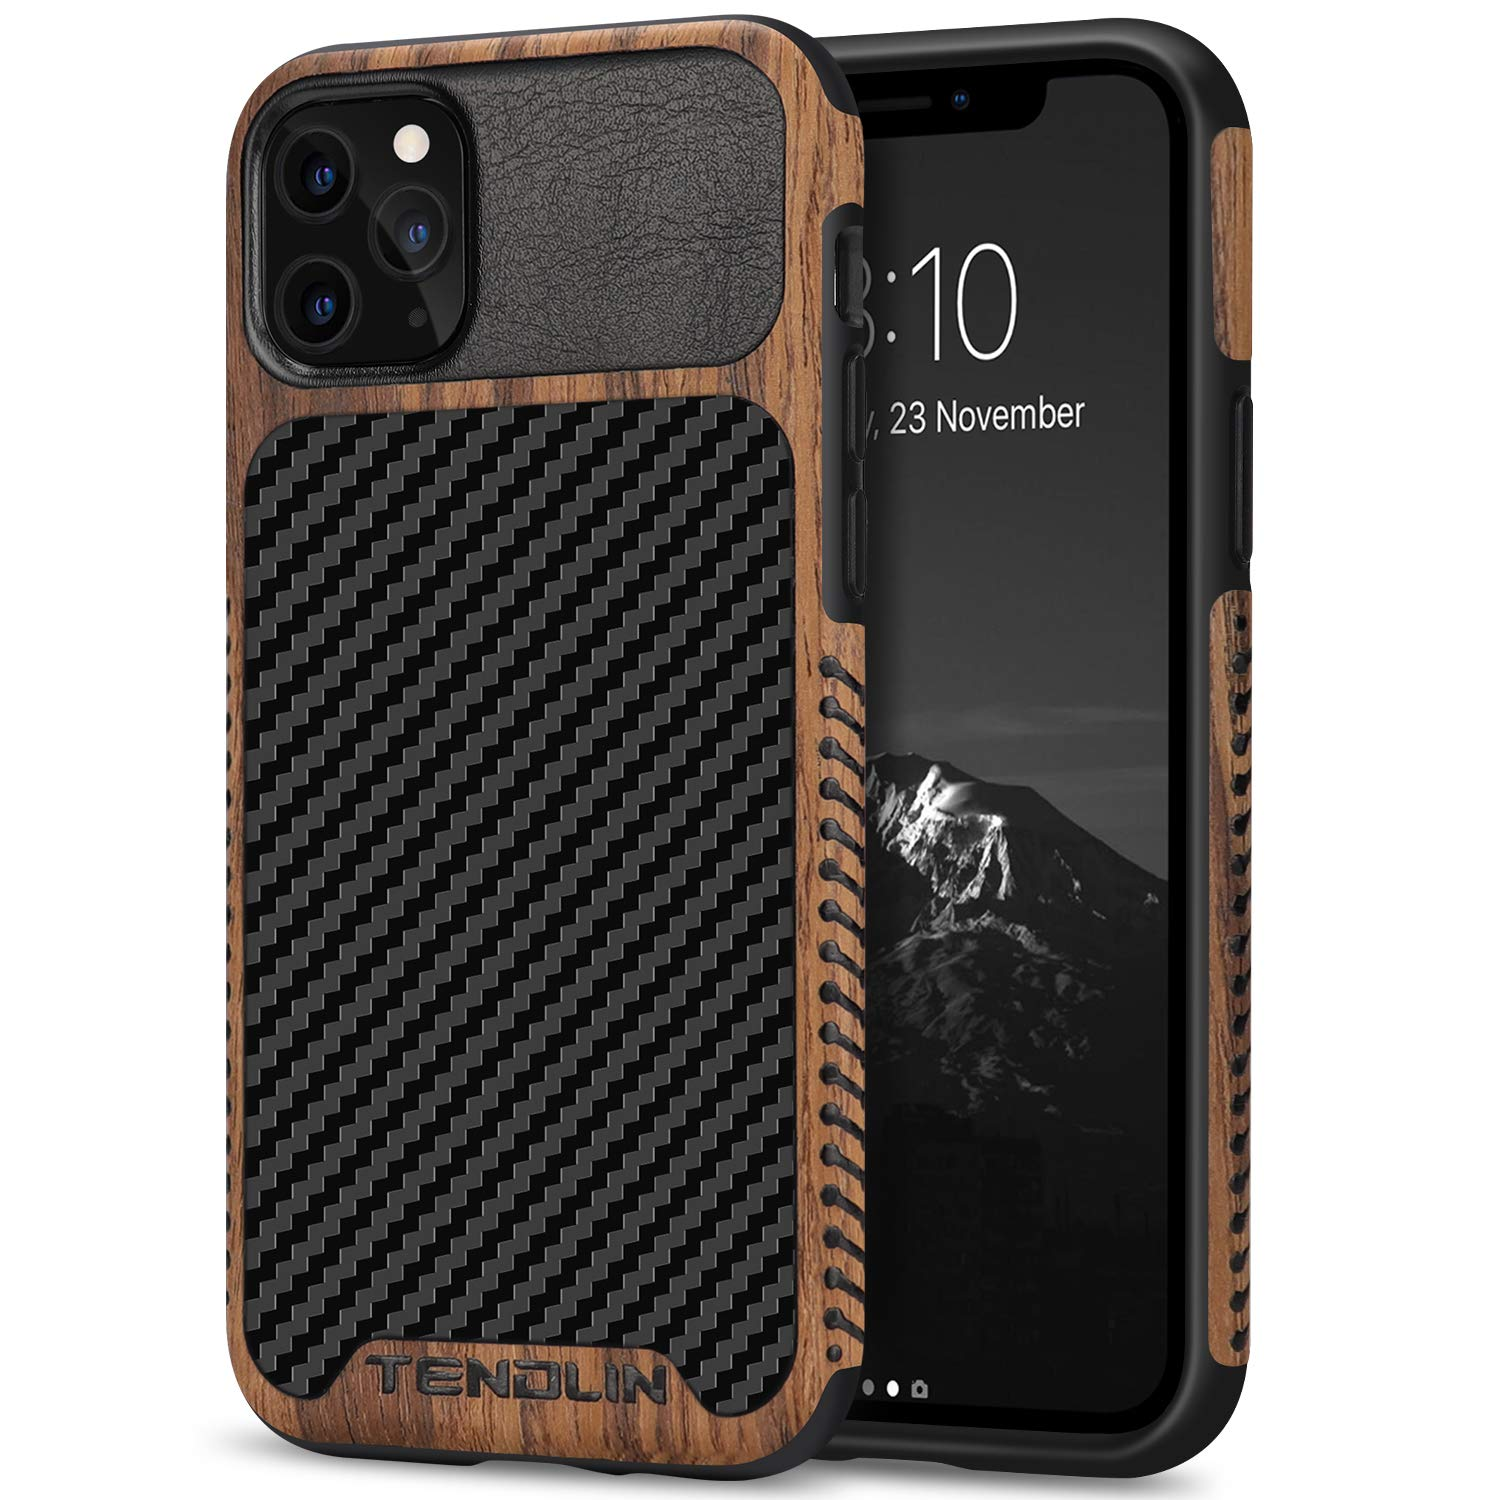 iPhone 11 Pro Wood Grain and Carbon Fiber Case